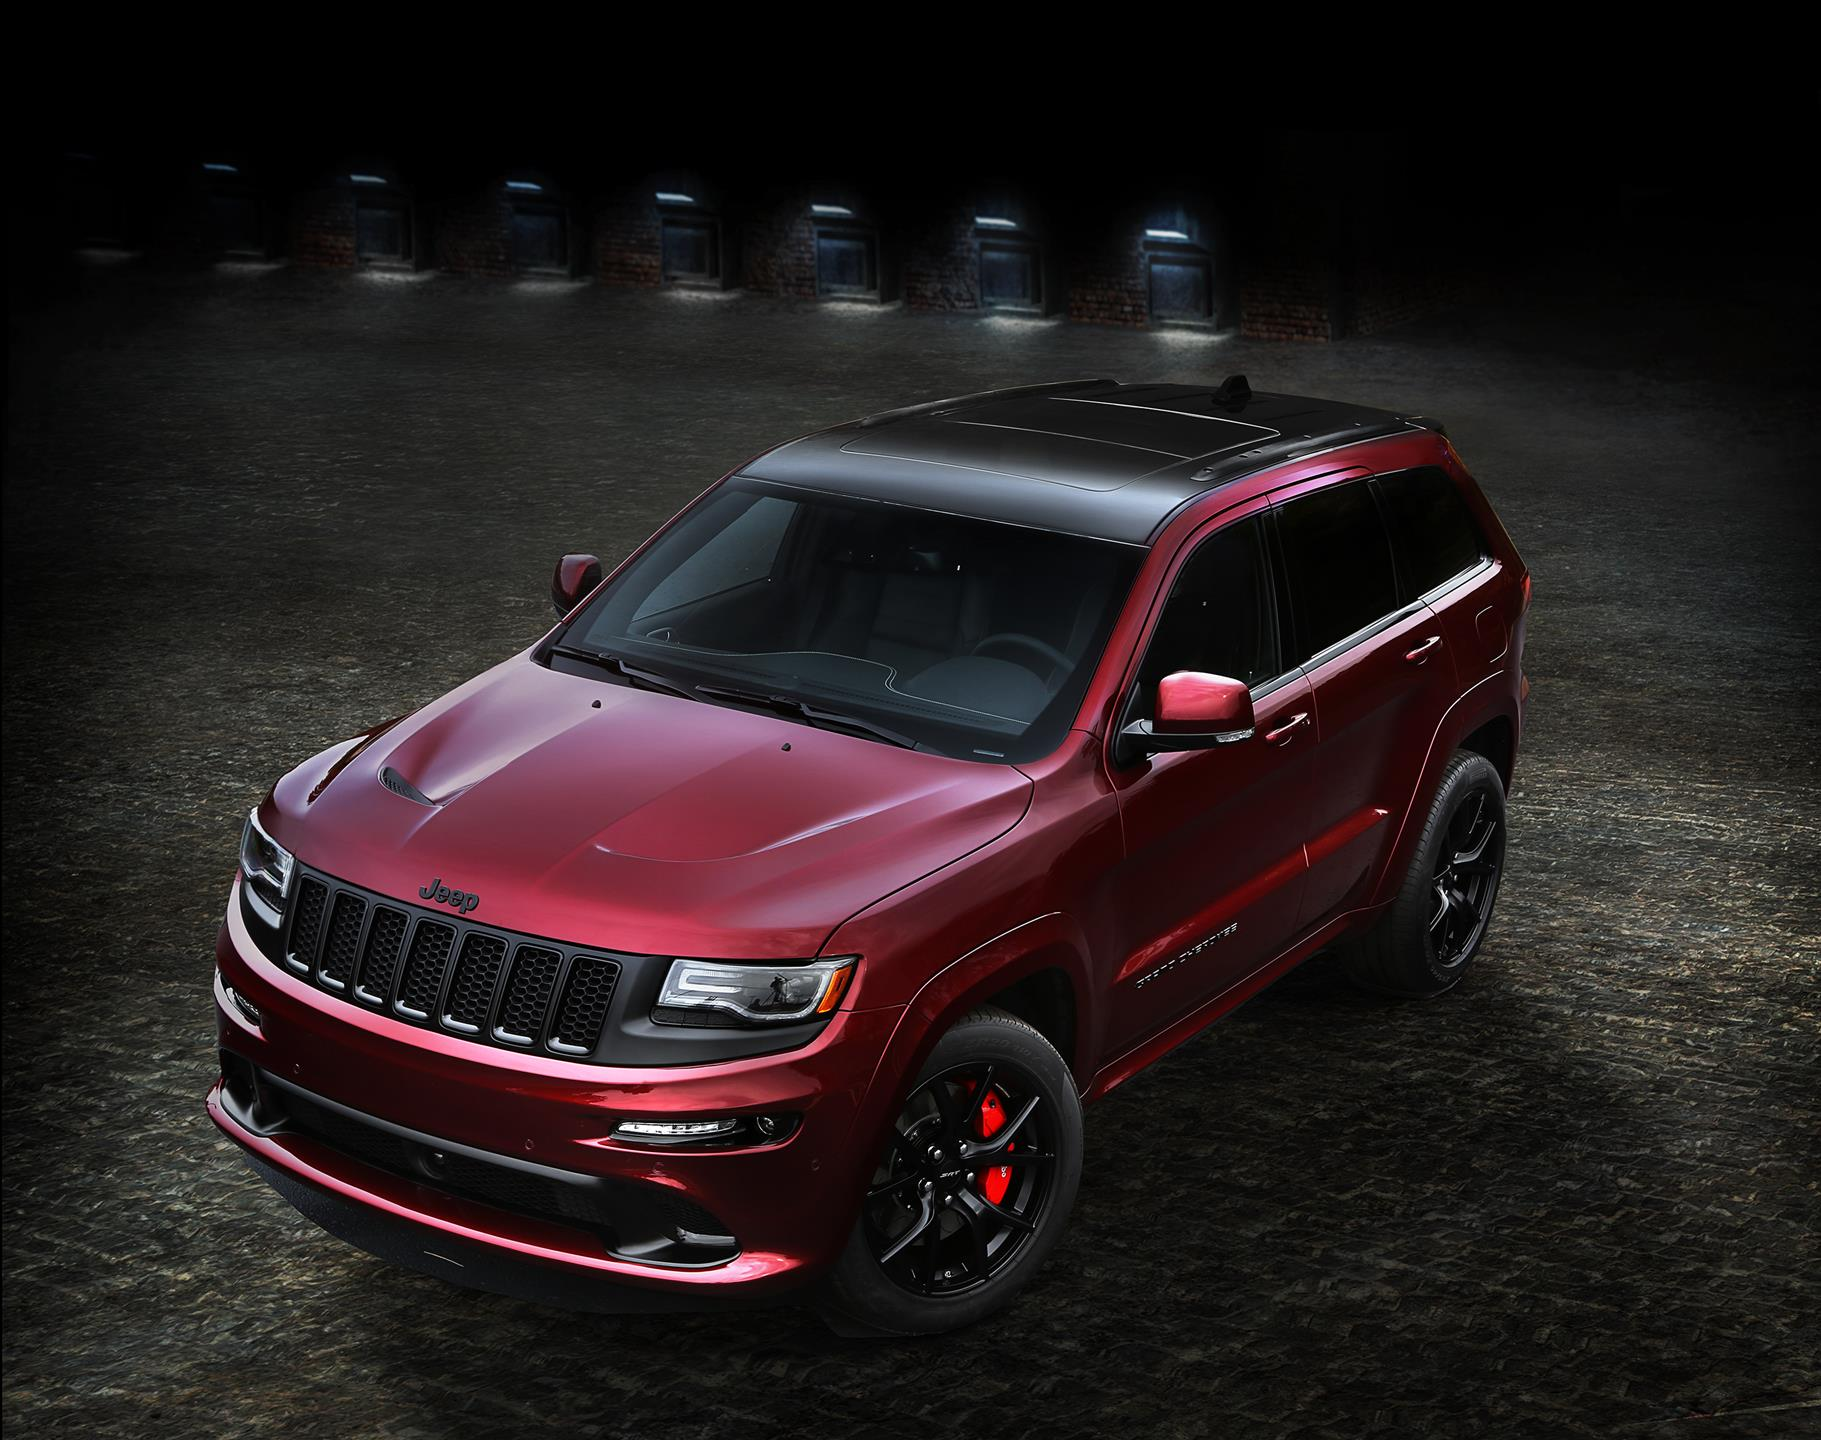 Grand Cherokee 2005 Limited >> 2015 Jeep Grand Cherokee SRT Night News and Information - conceptcarz.com